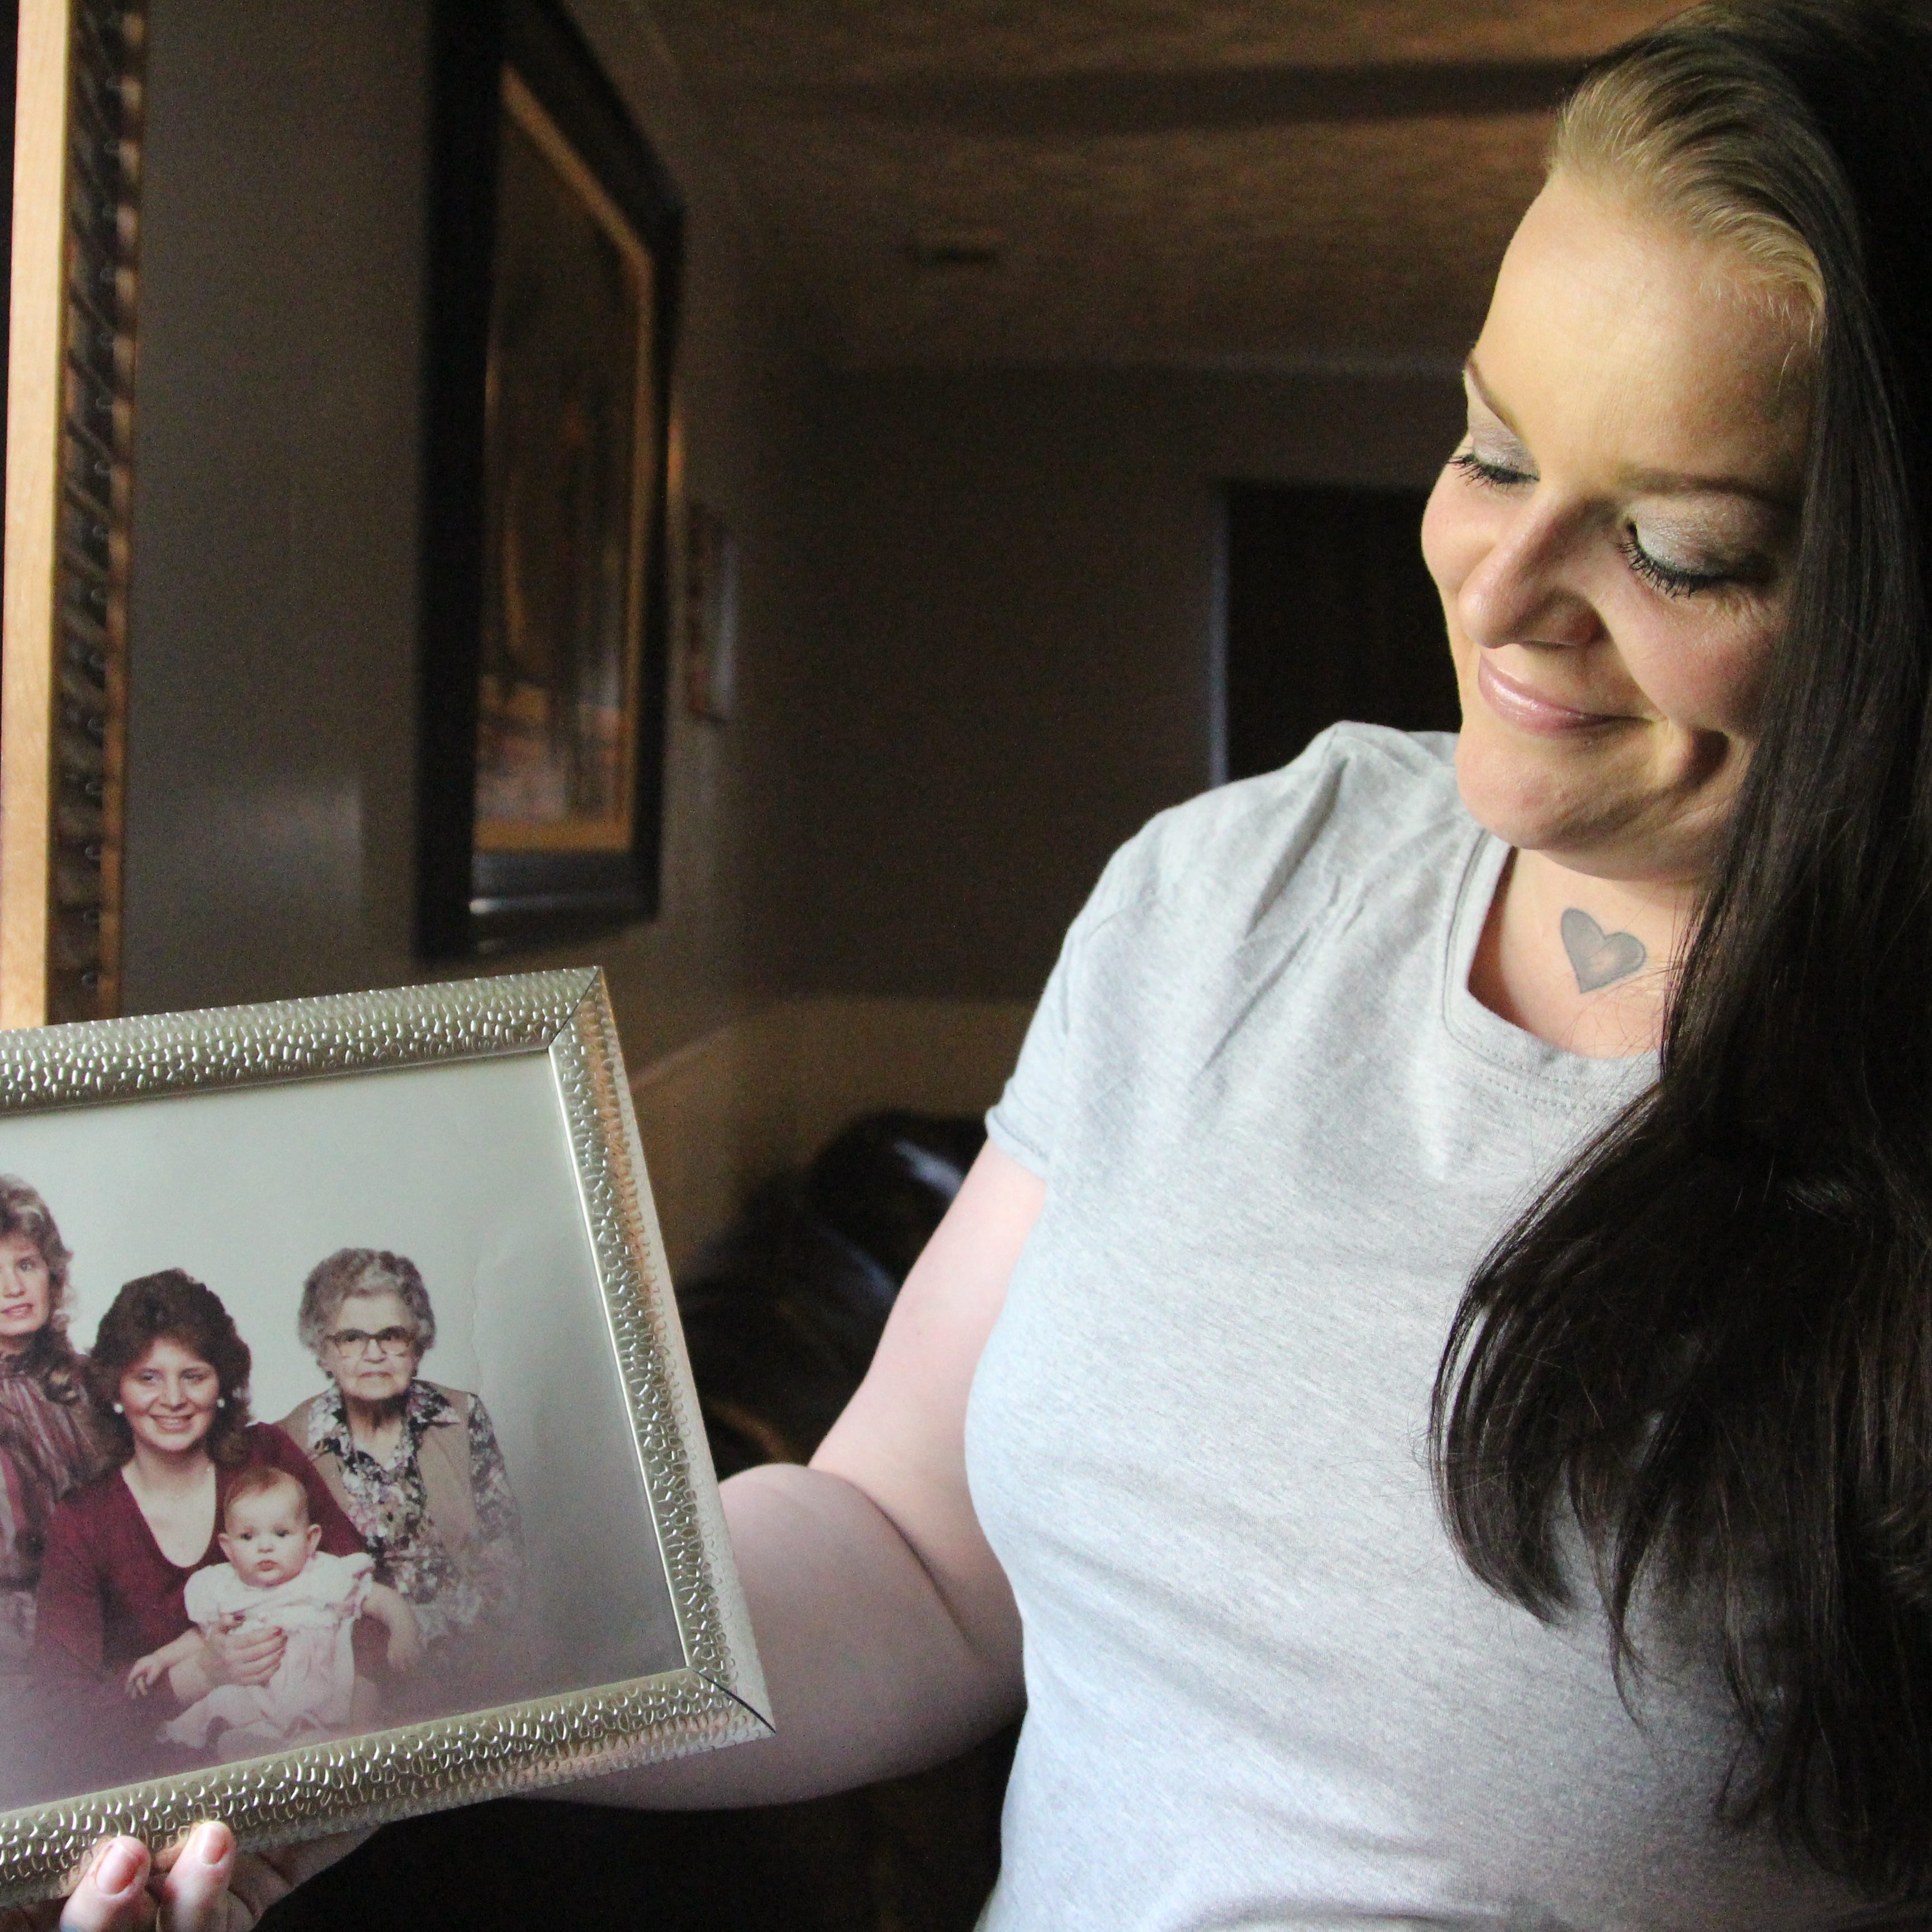 Marion sisters survive addiction despite losing mother to it